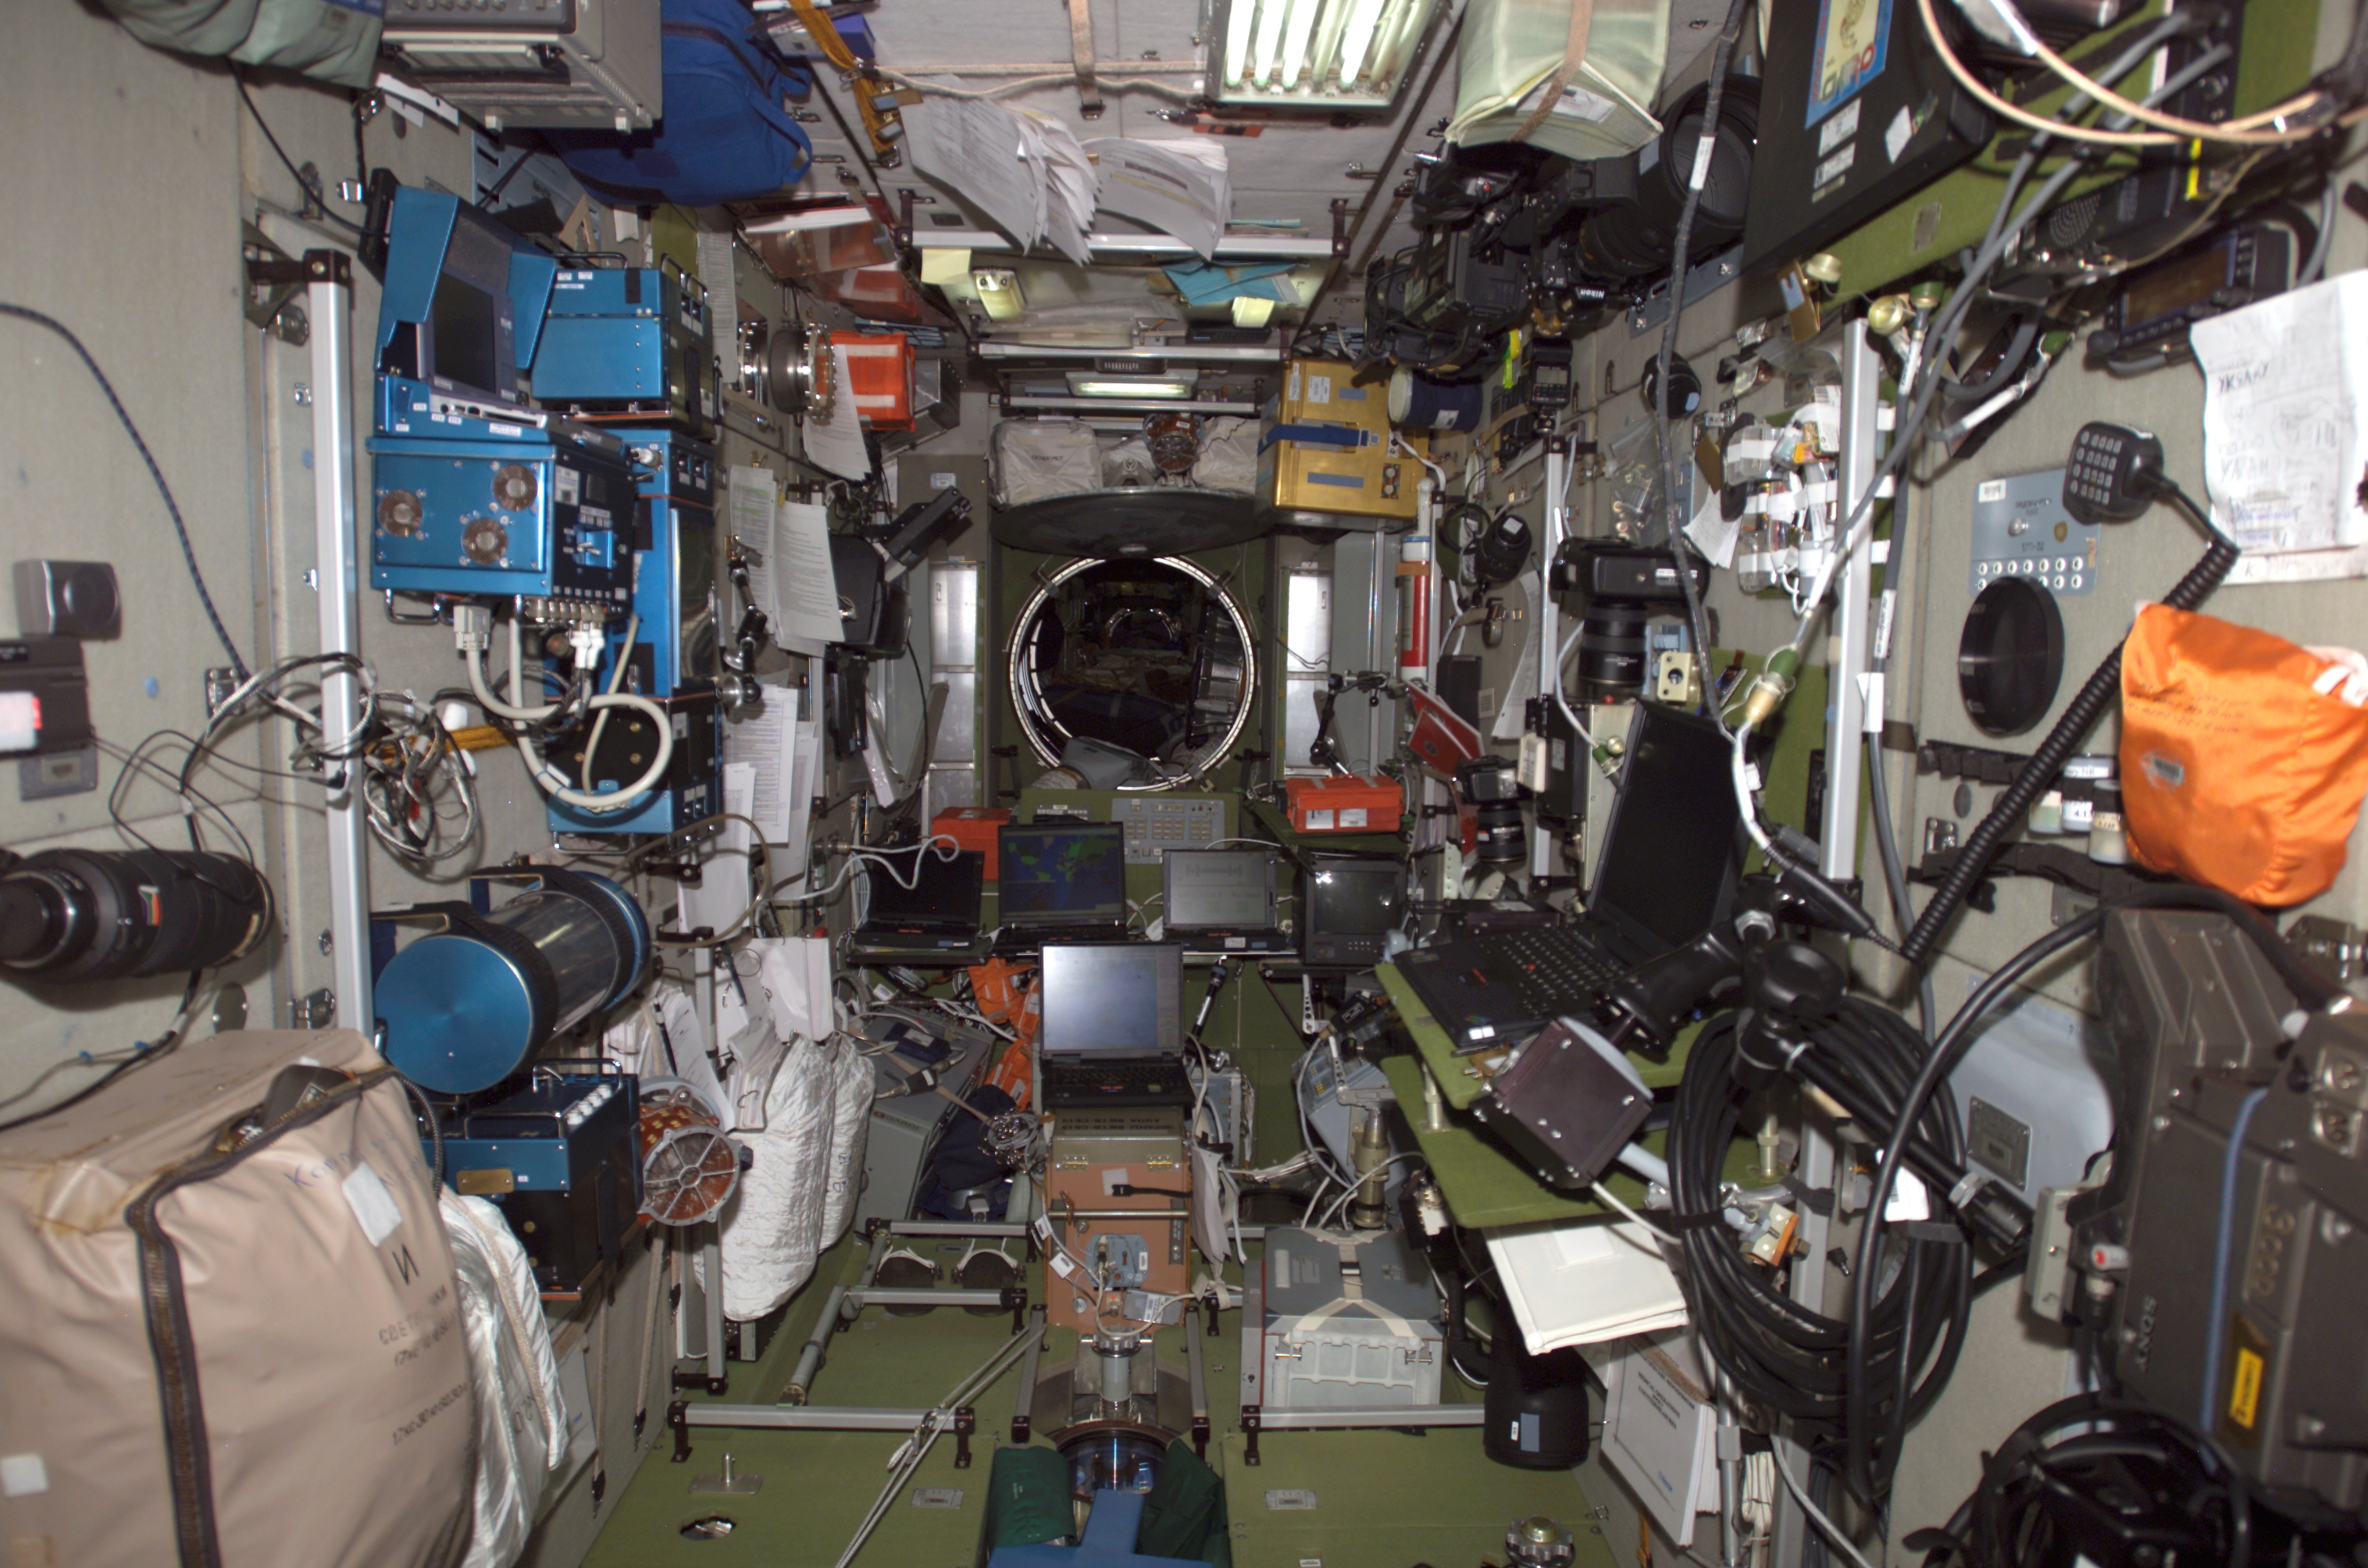 File:ISS-10 Interior view of the Zvezda Service module.jpg ...